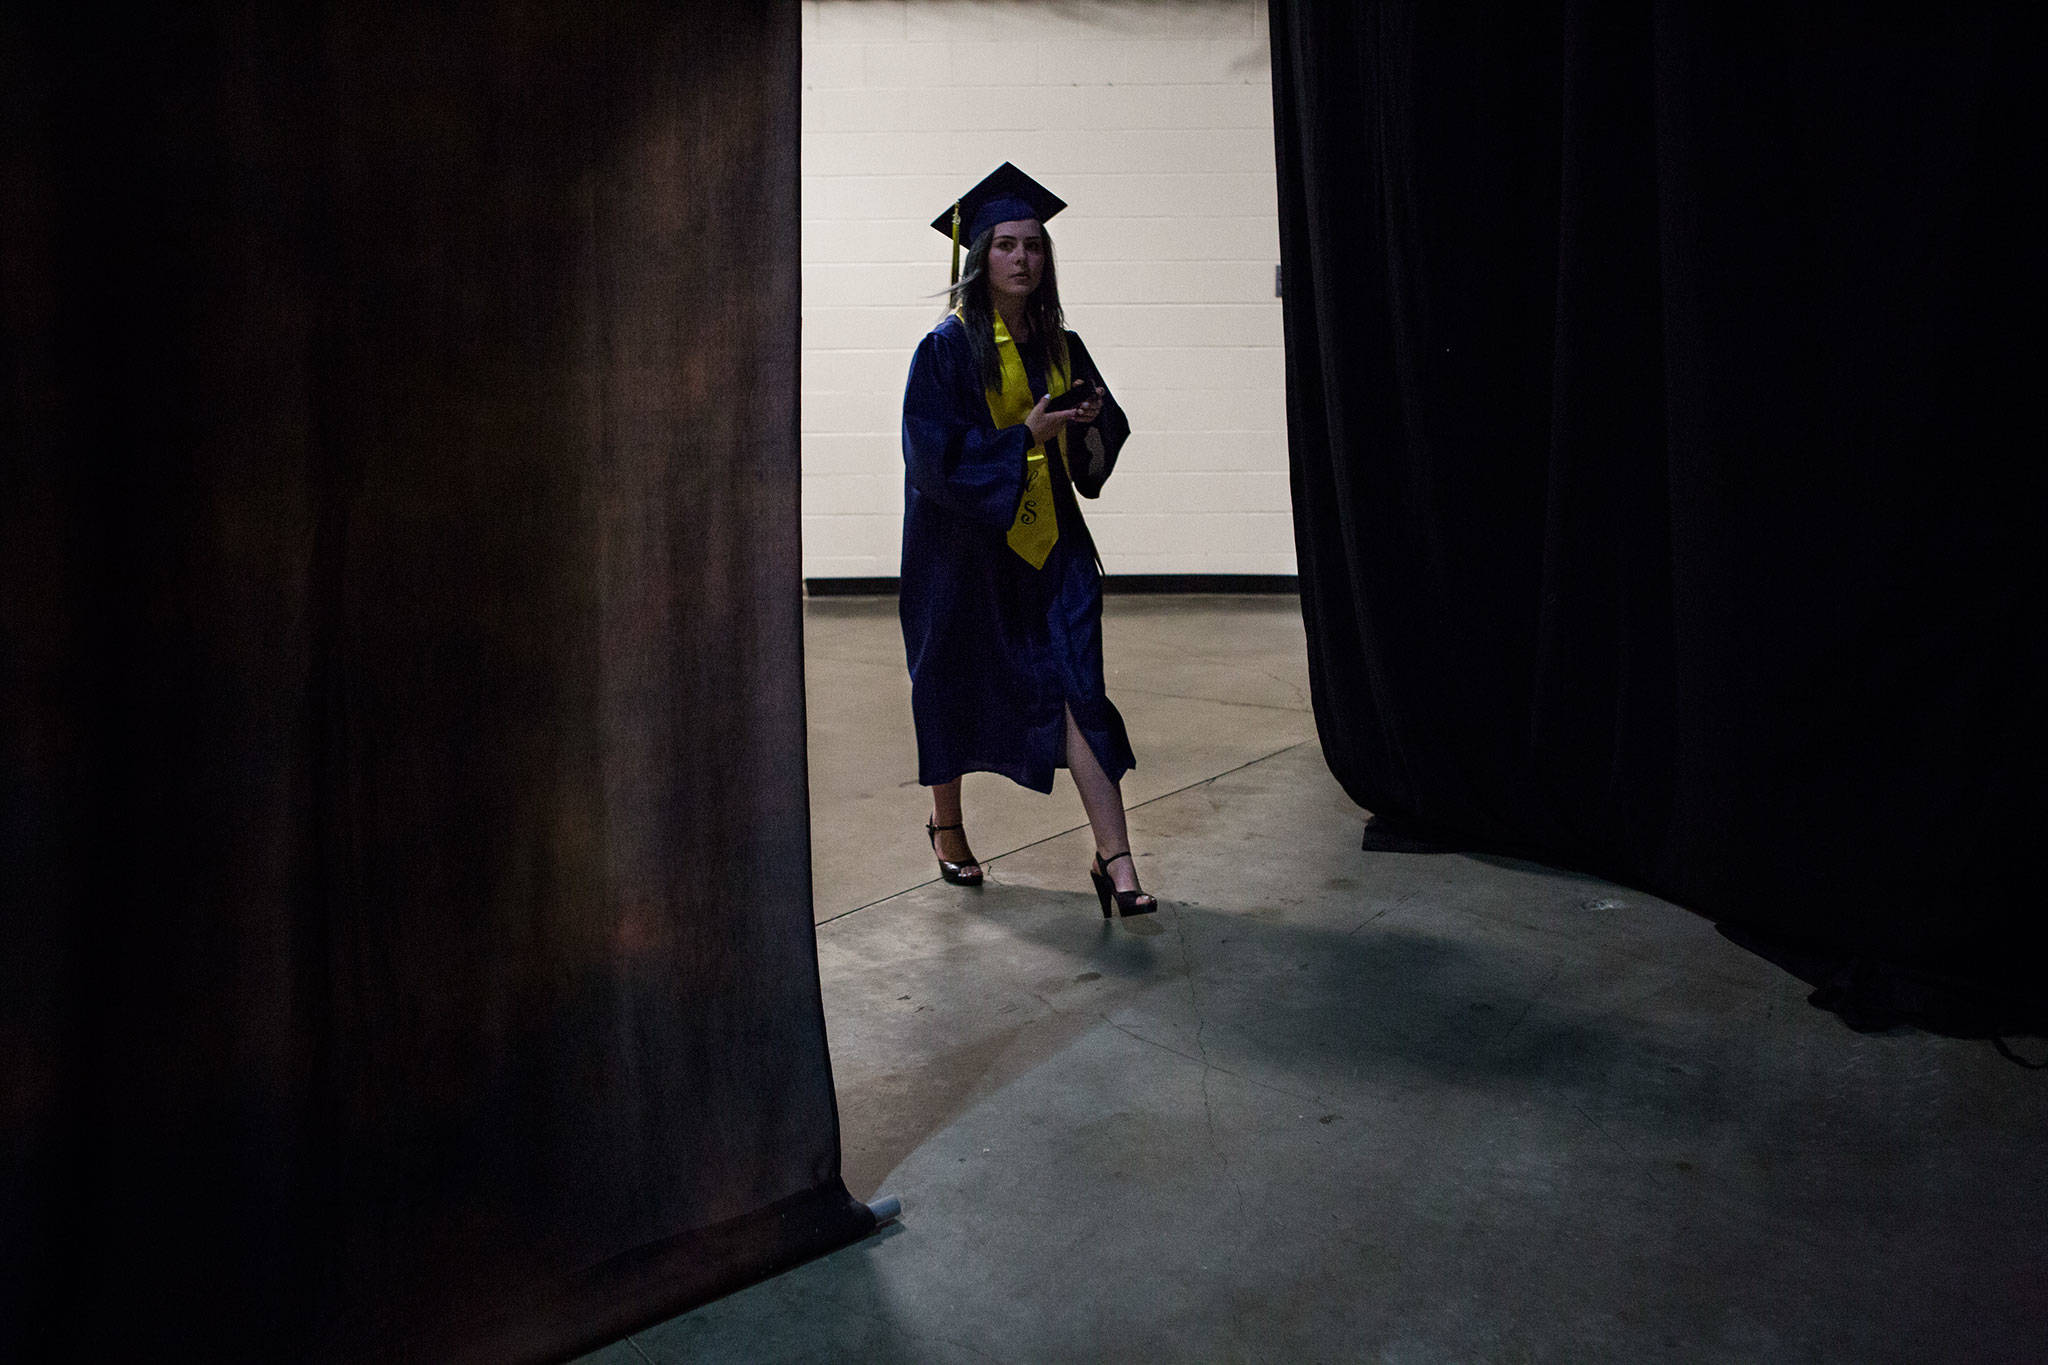 Scenes from Everett High School graduation at Angel of the Winds Arena on Saturday, June 15, 2019 in Everett, Wash. (Olivia Vanni / The Herald)